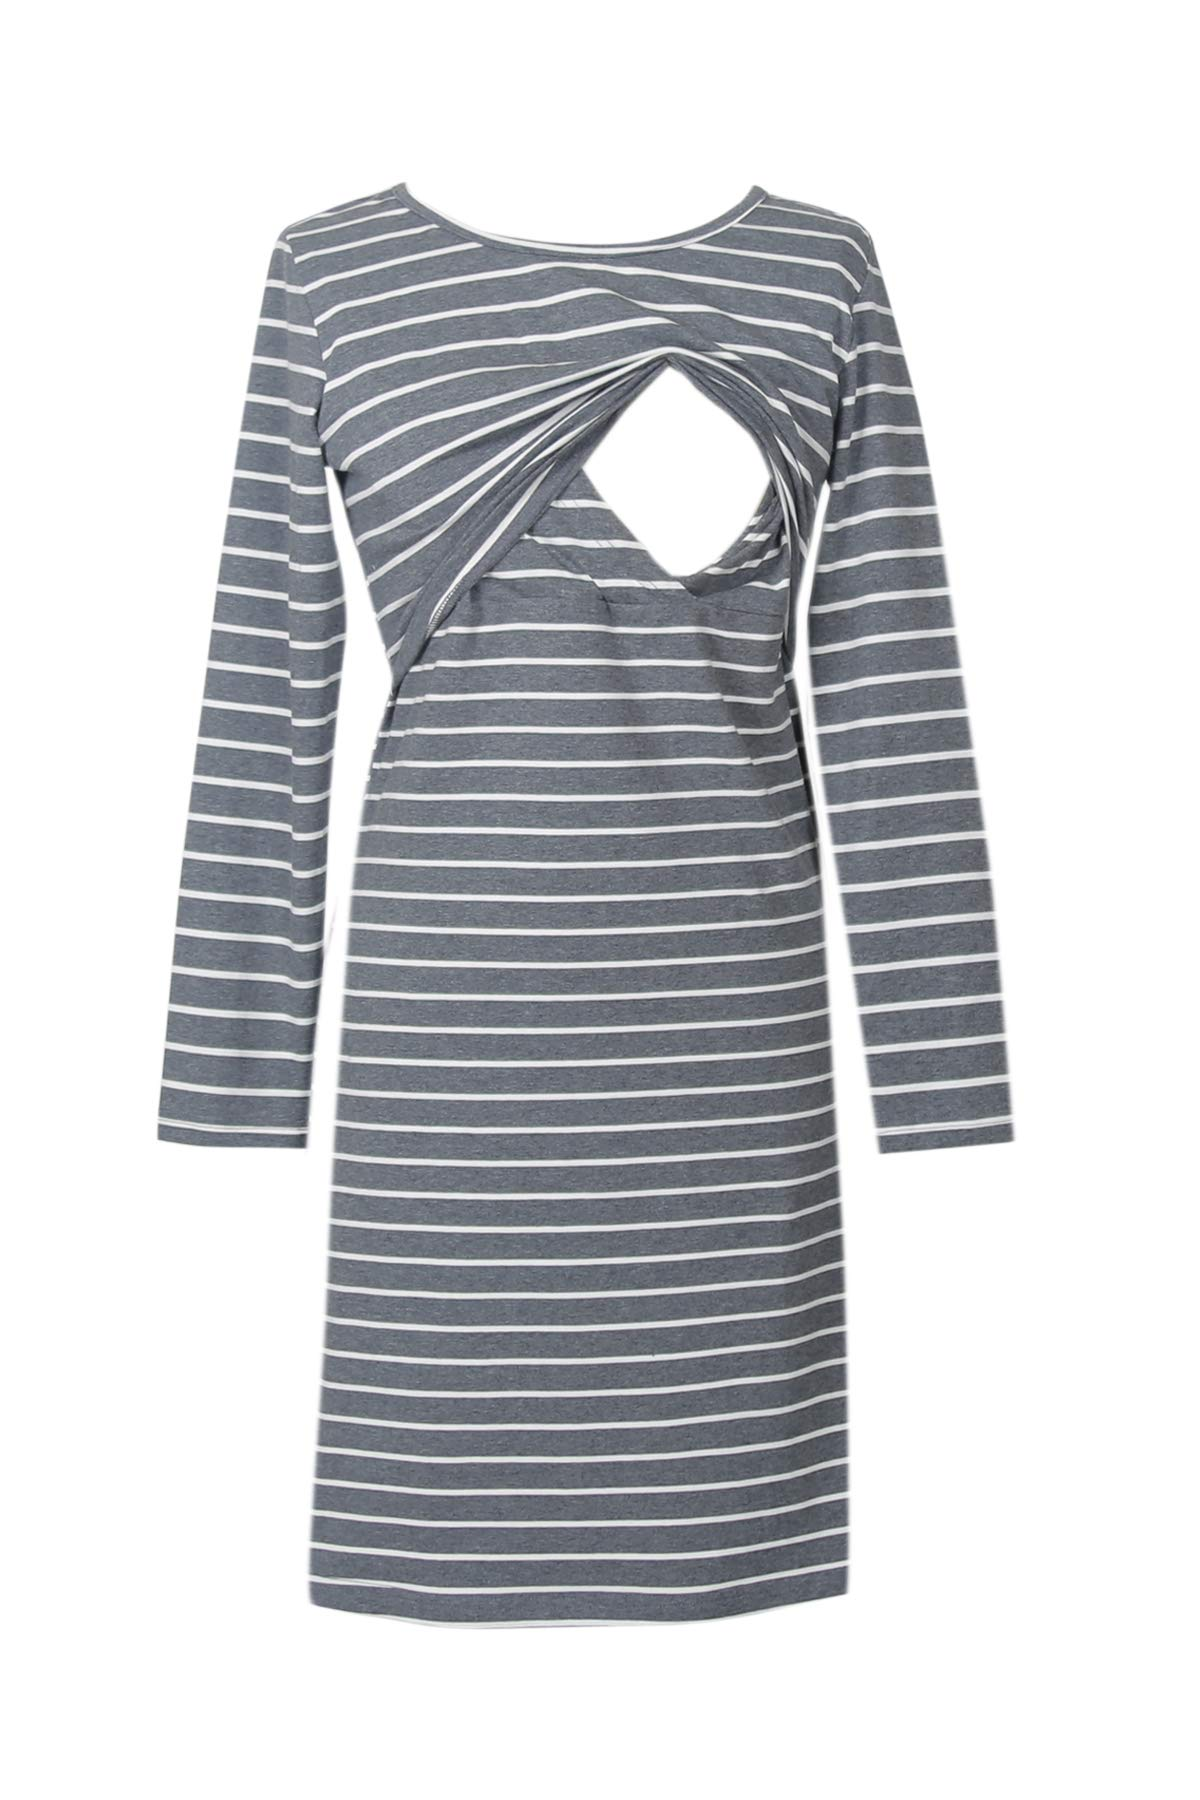 Smallshow Women's Stripes Nursing Dress Large Dim Grey